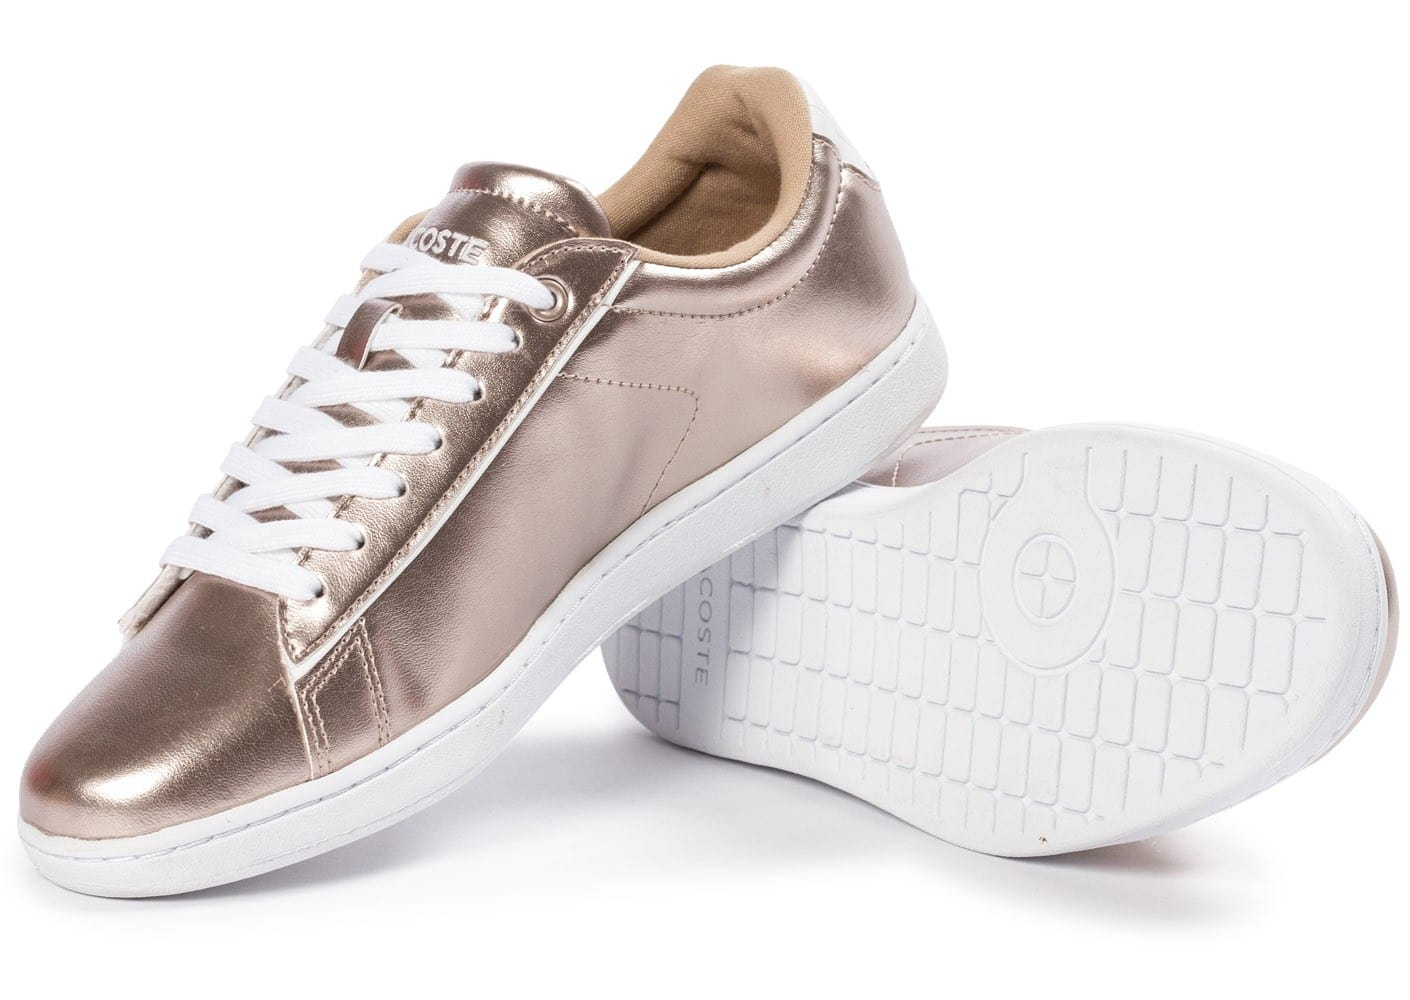 Lacoste carnaby evo or chaussures chaussures chausport - Lacoste carnaby evo cls baskets en cuir perfore ...